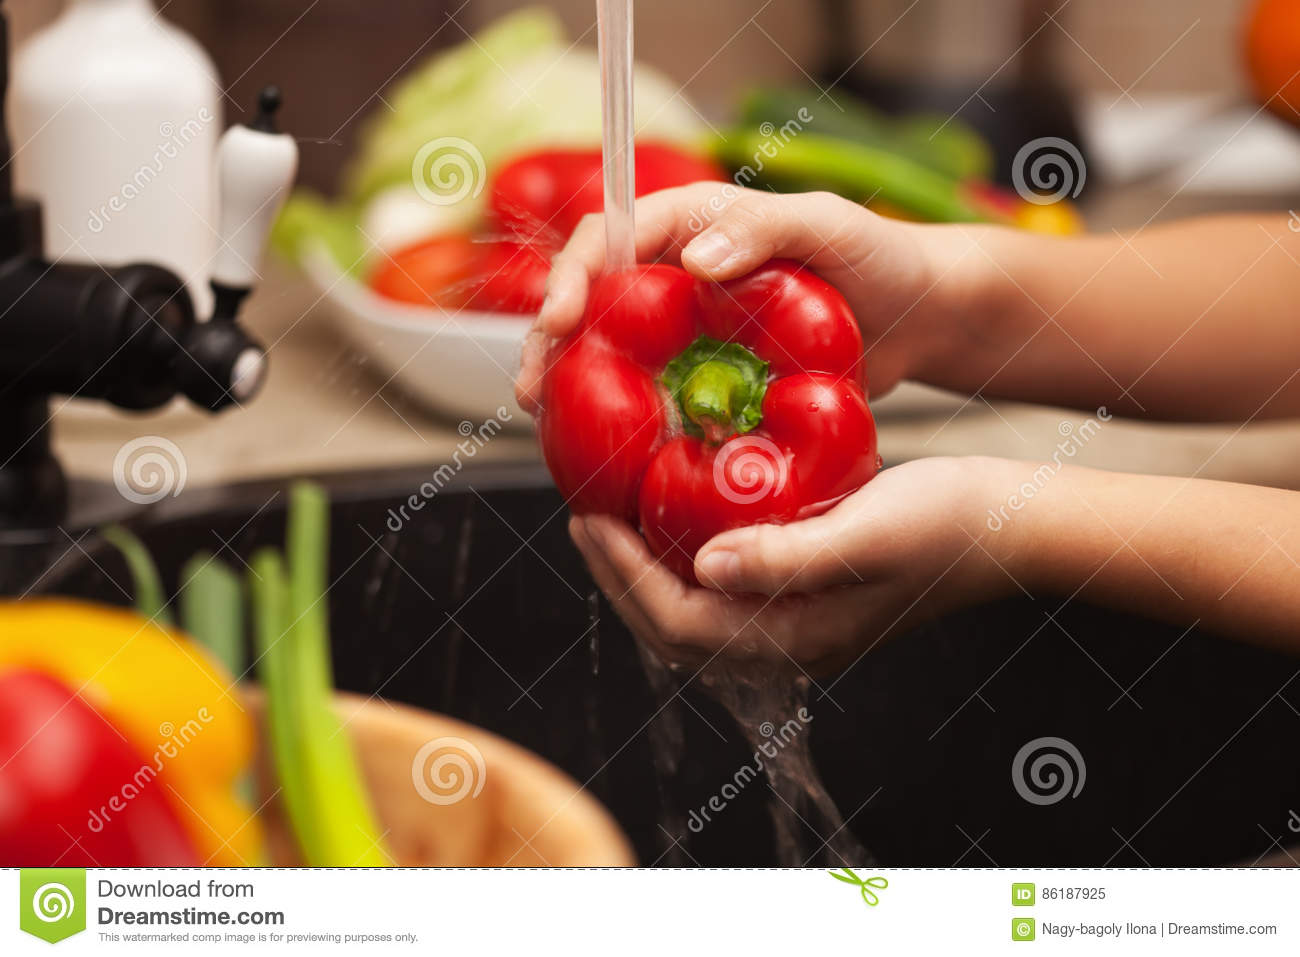 Washing fresh vegetables for a healthy salad - the red bell pepper, shallow depth